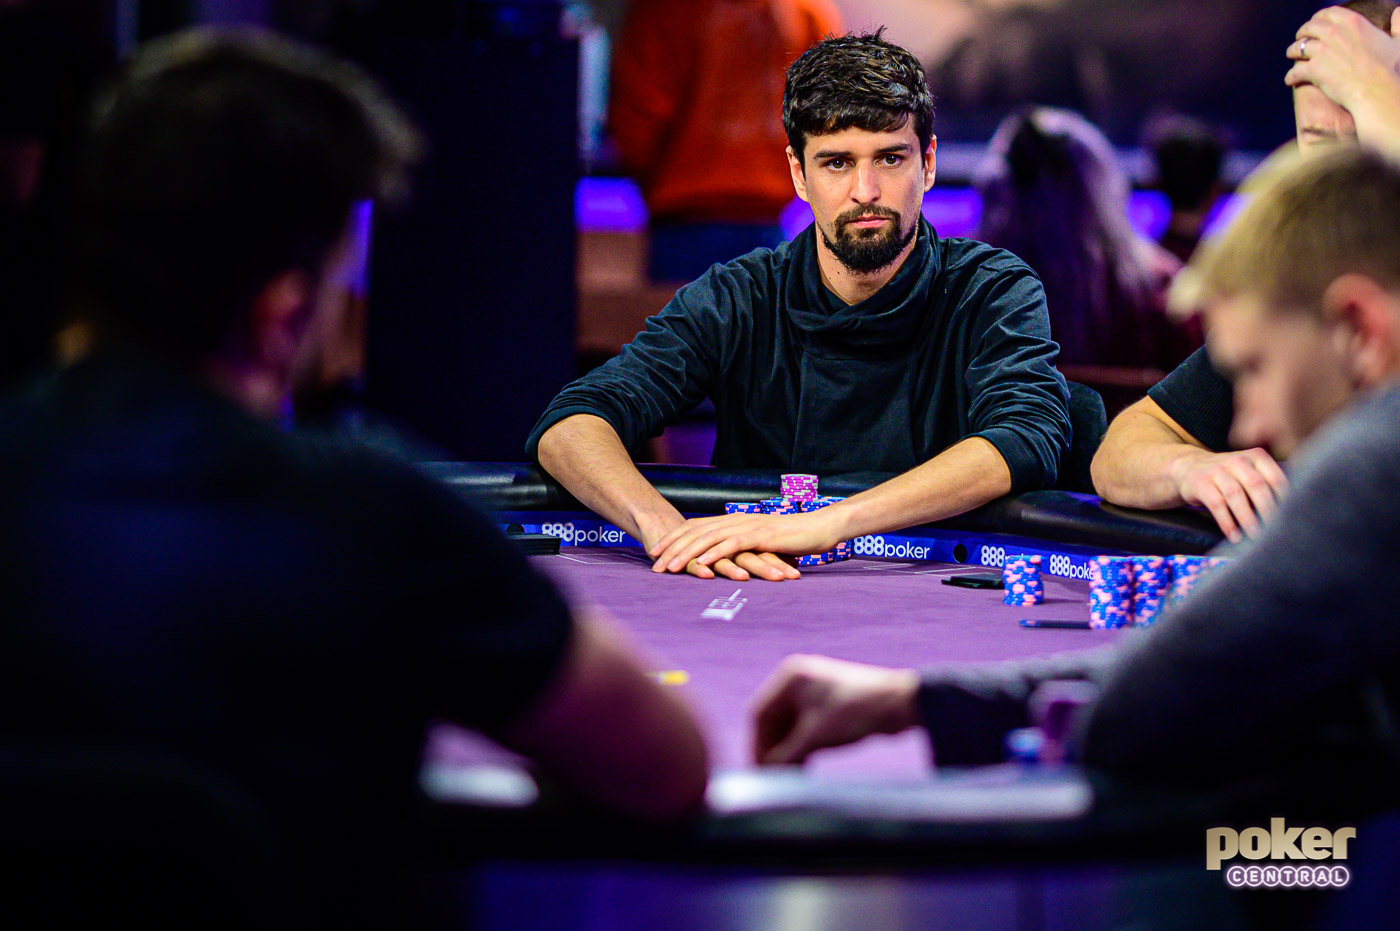 Sergi Reixach in action at the final table.